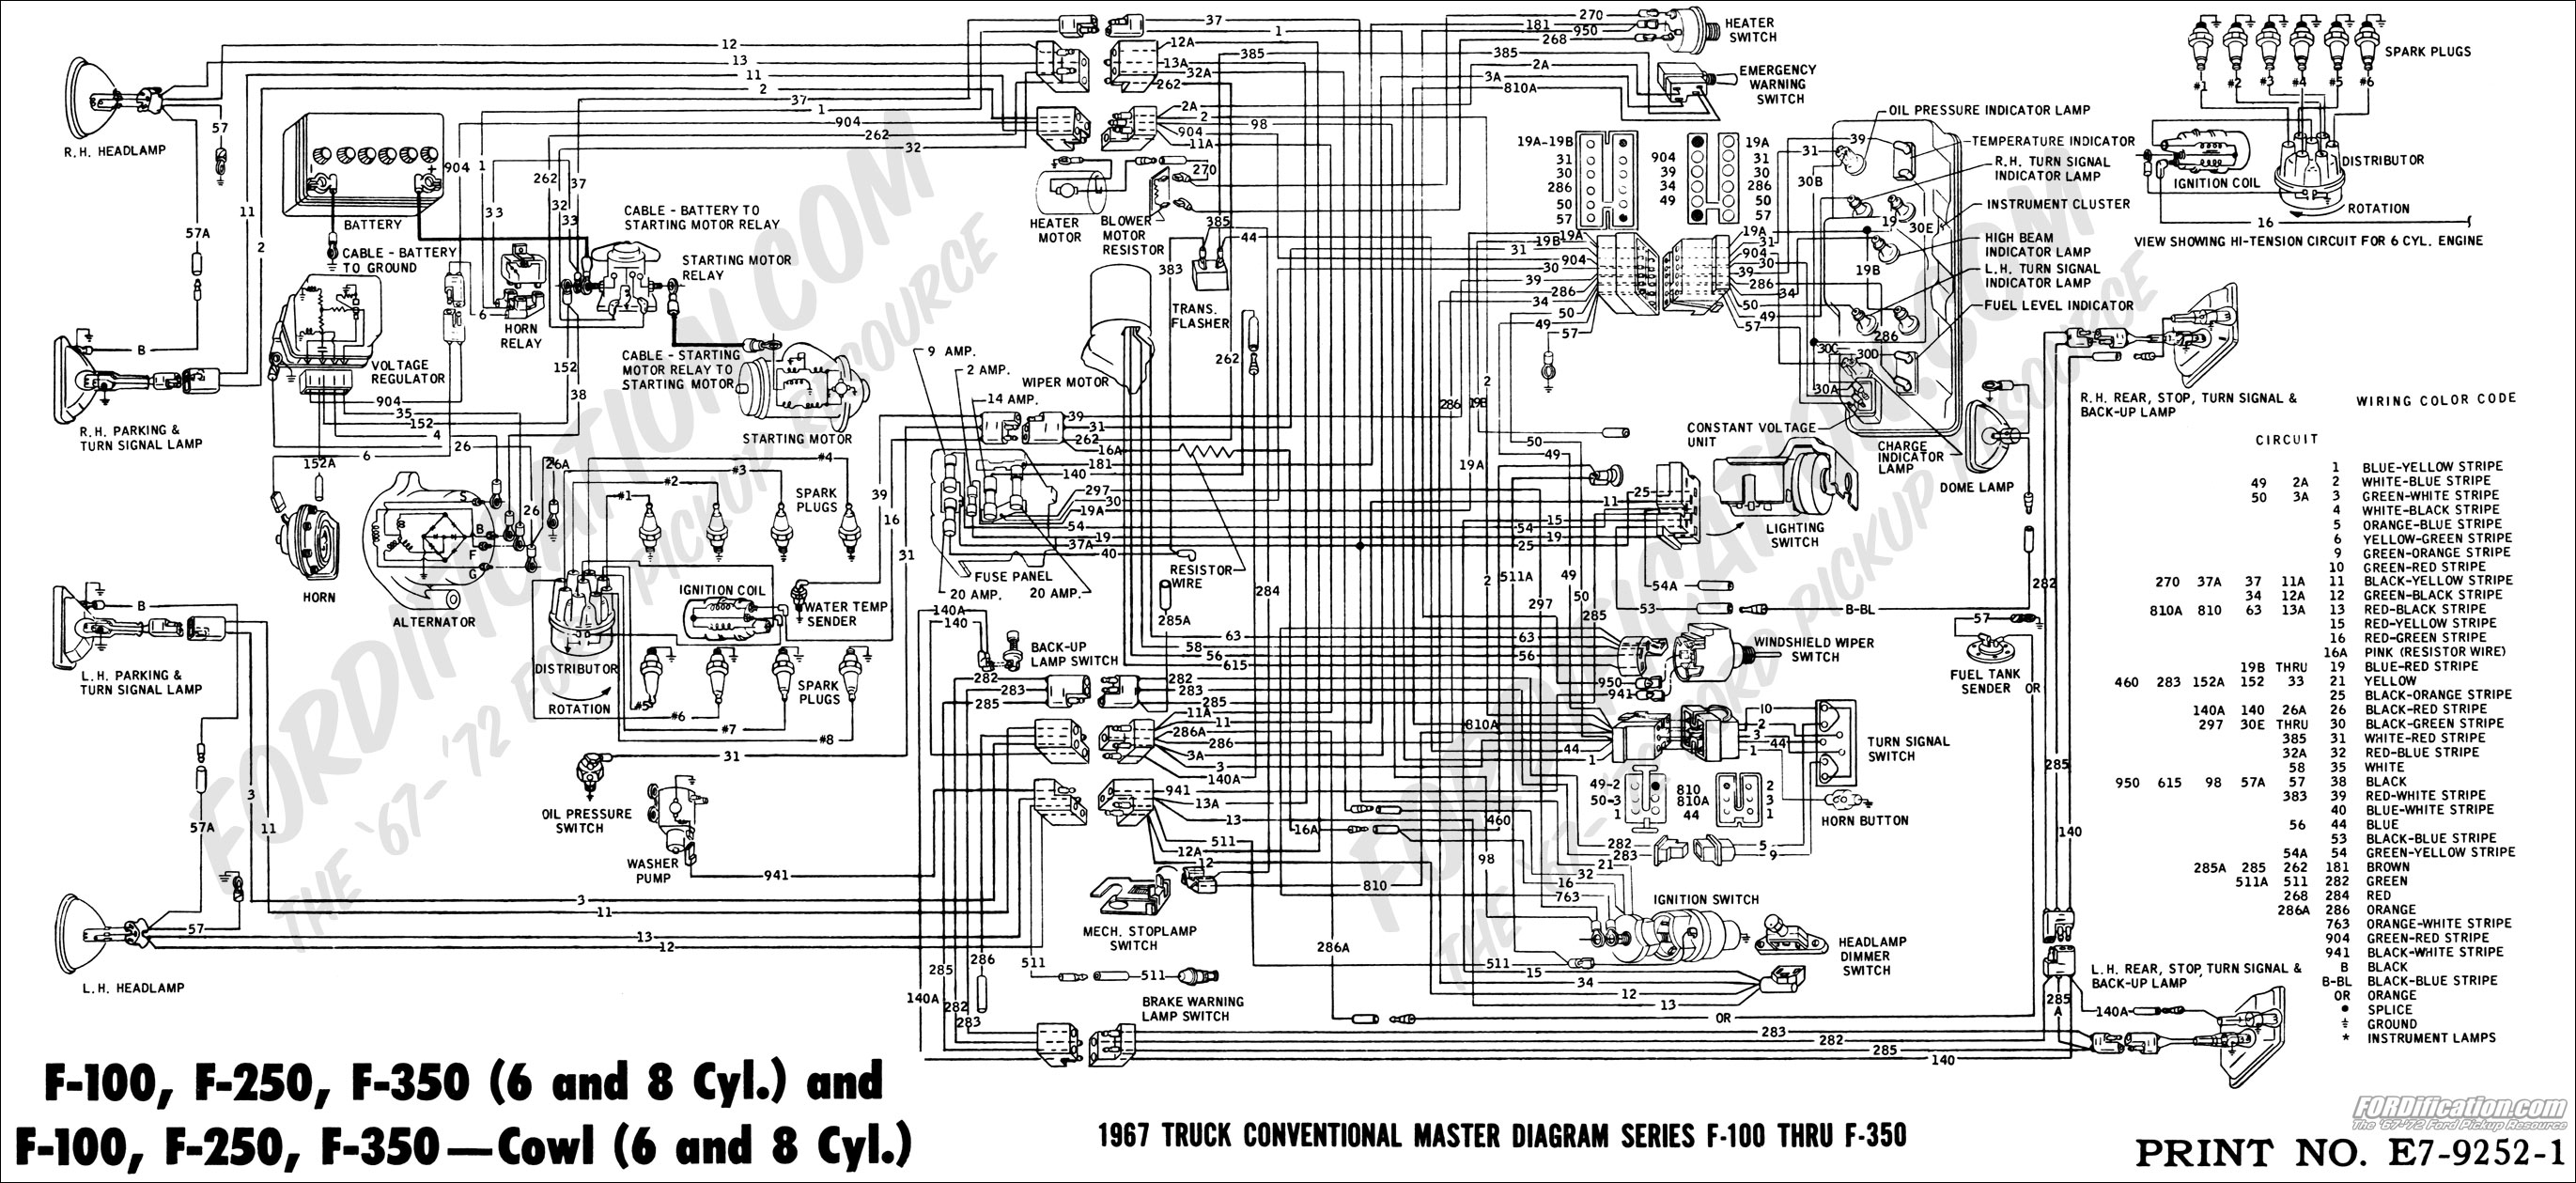 ford f 150 2003 wiring harness diagram enthusiast wiring diagrams u2022 rh rasalibre co 96 Ford F-350 Wiring Harness Diagrams 1998 F350 Wiring Diagram